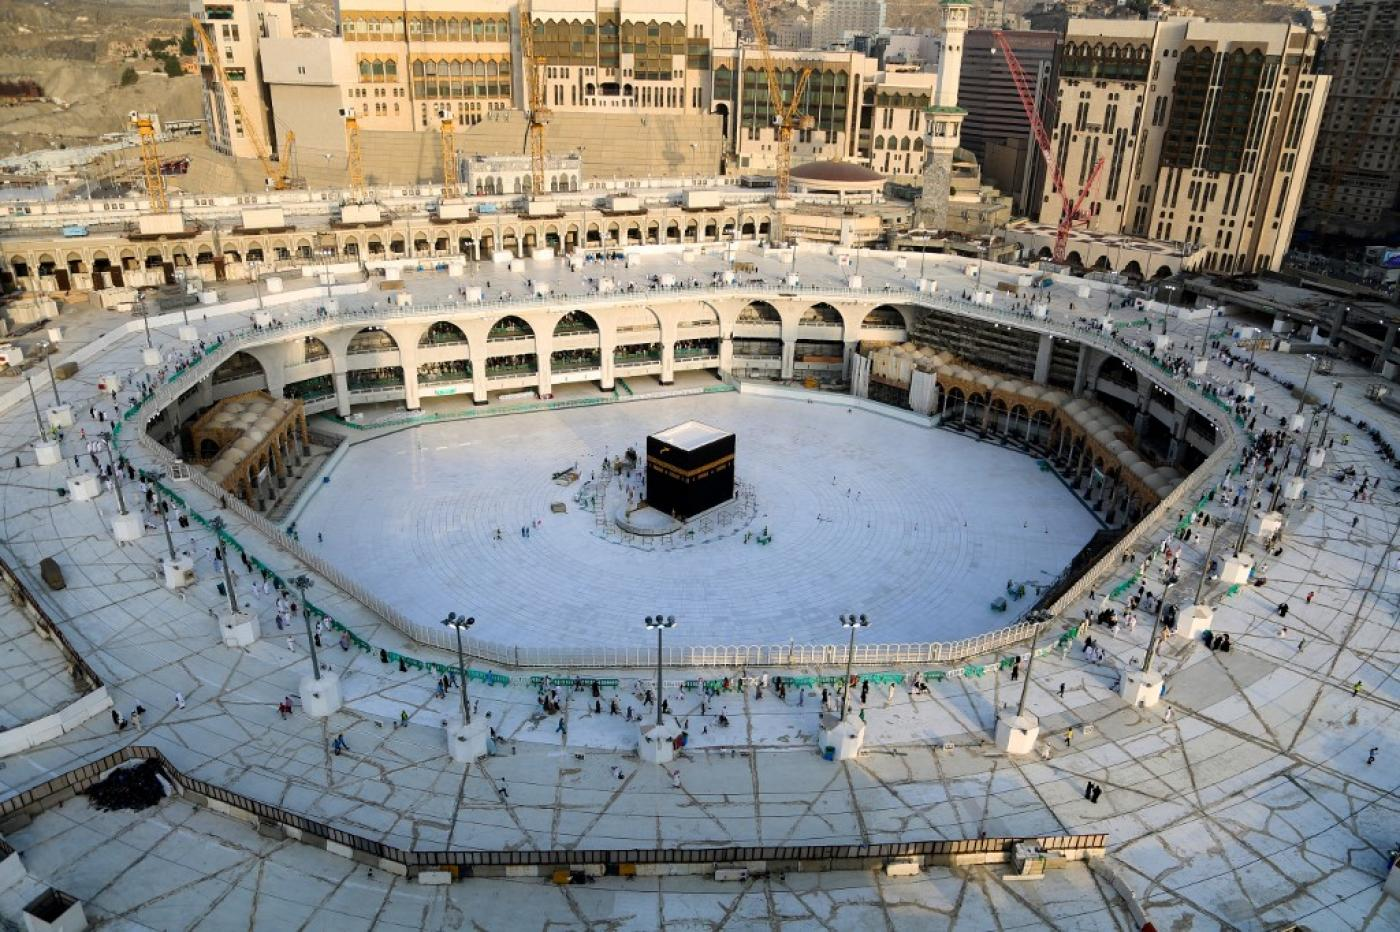 Saudi Arabia Imposed A 24 Hour Curfew In The Muslim Holy Cities Of Mecca And Medina On Thursday, Extending Measures To Combat The Spread Of The Coronavirus, Which Has Infected More Than 1,700 People